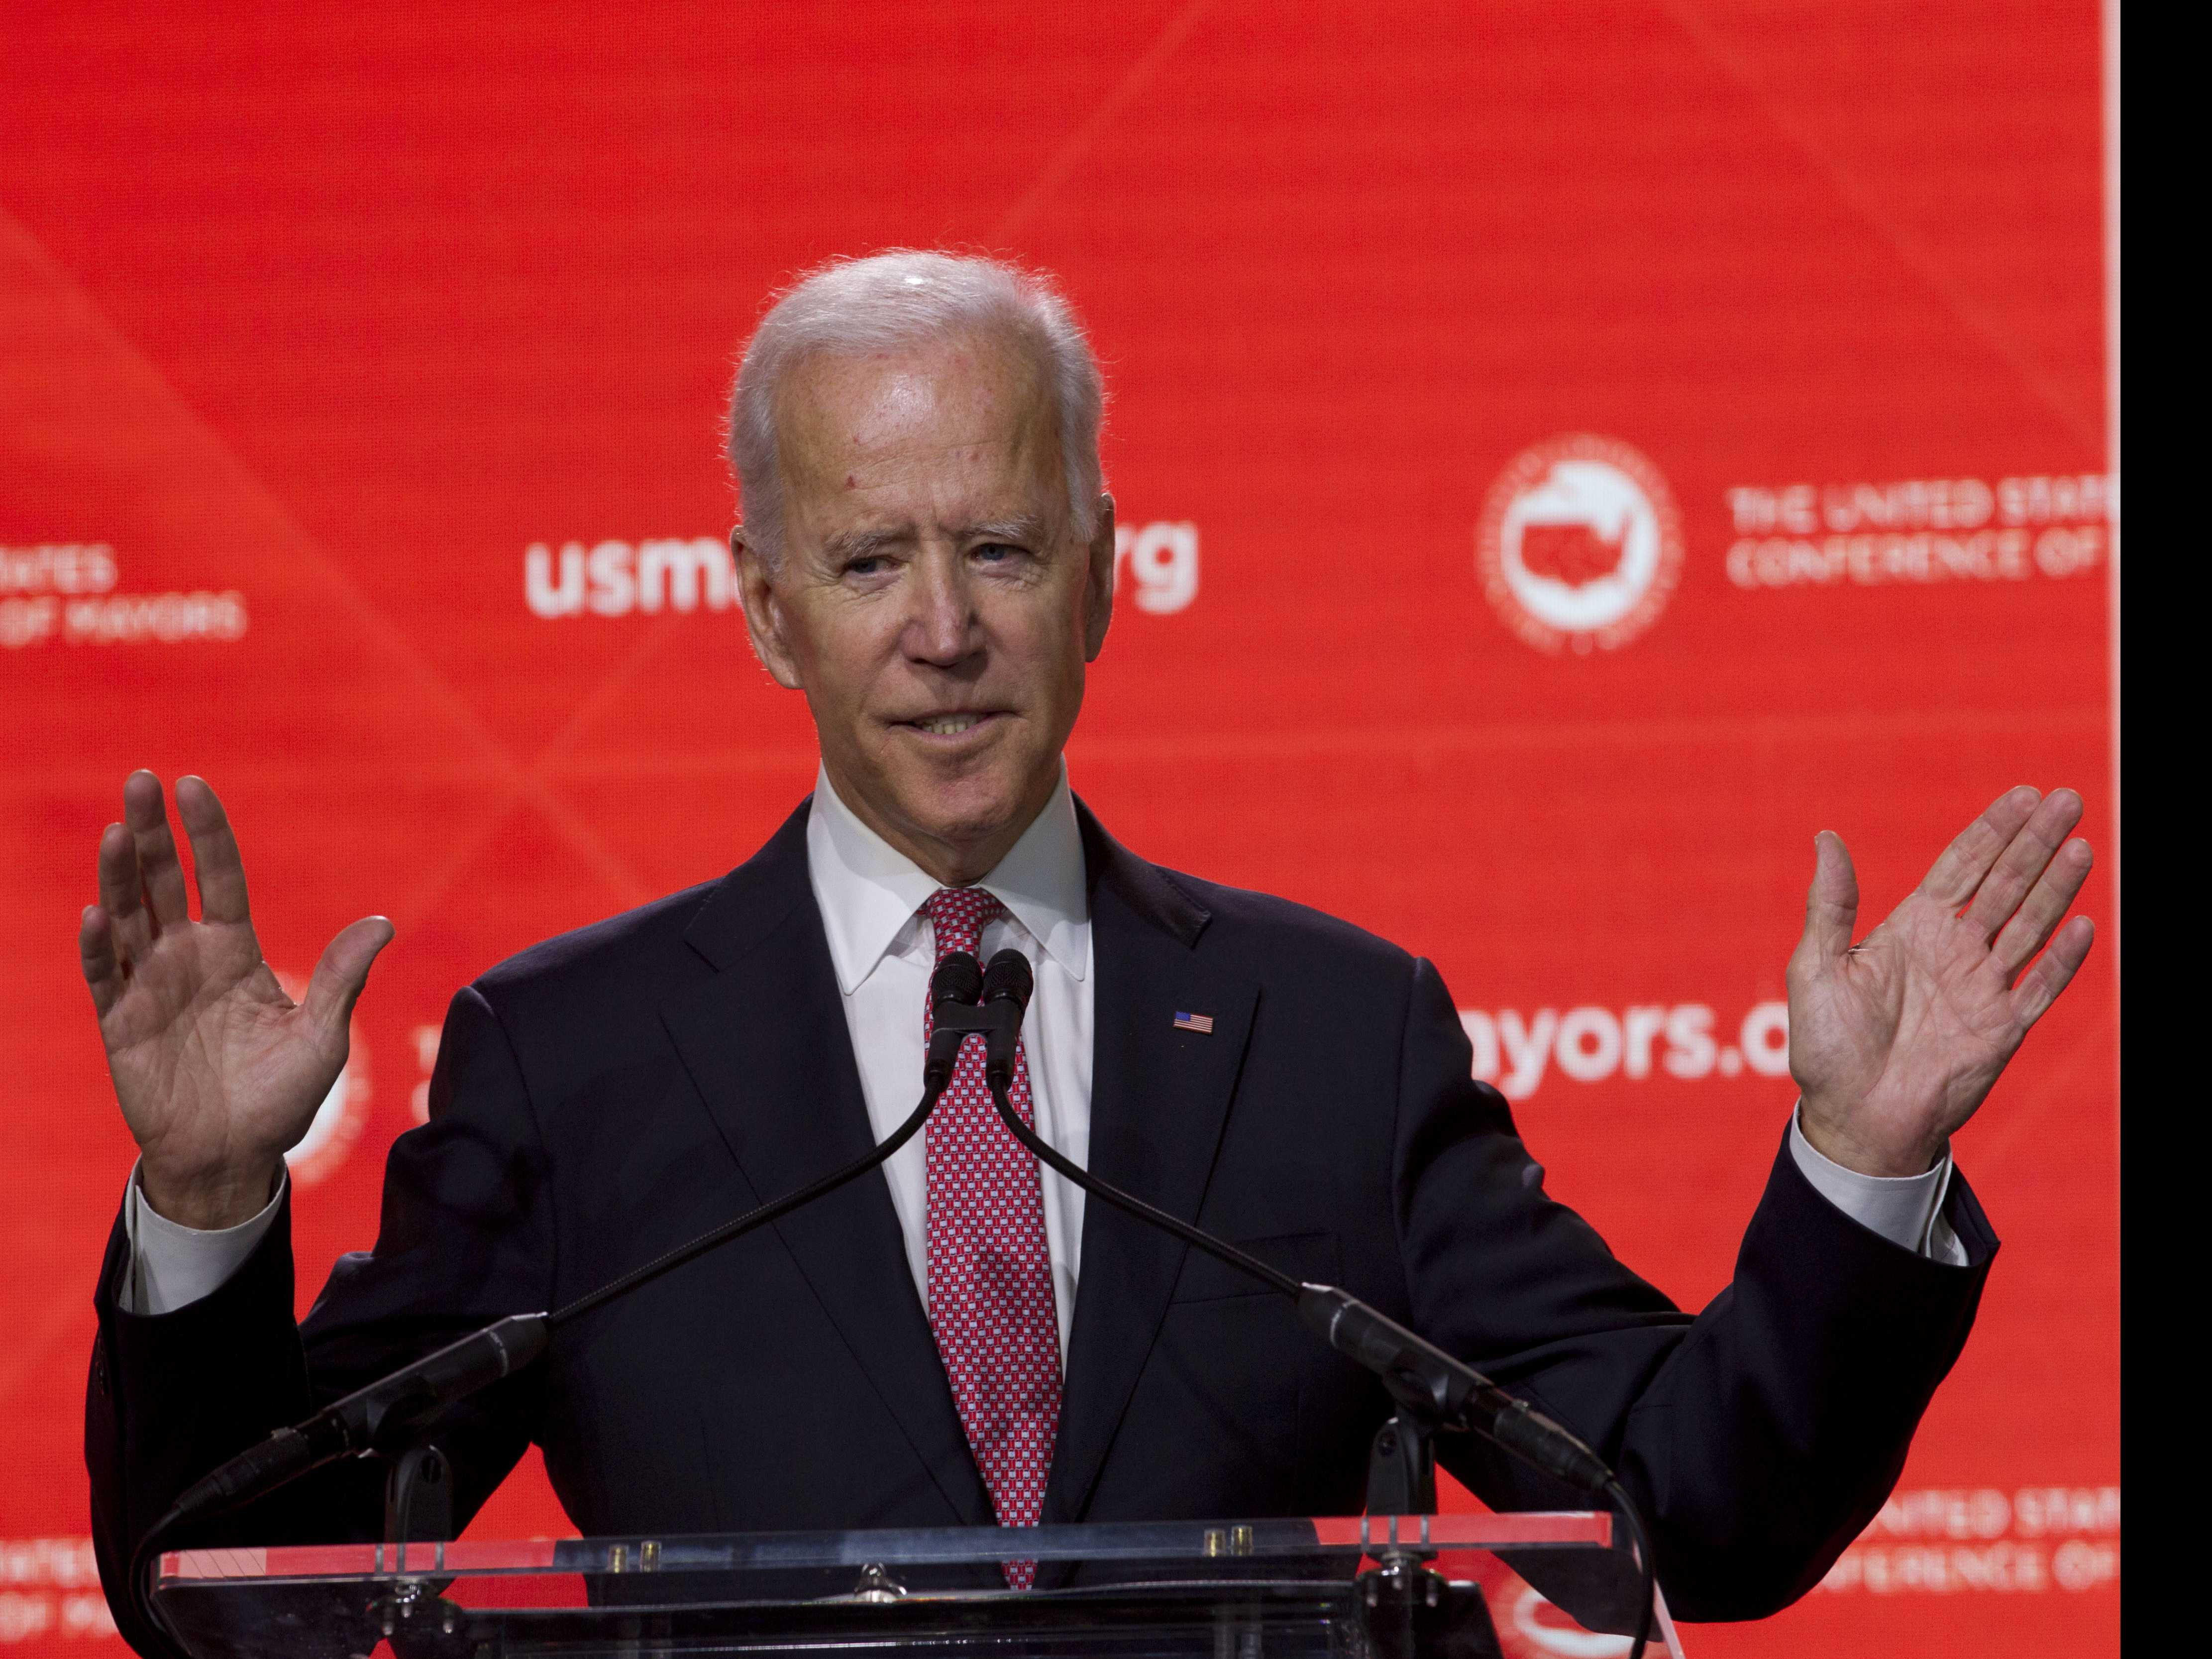 Biden's 2020 Opening? Dem Field Missing Foreign Policy Hand